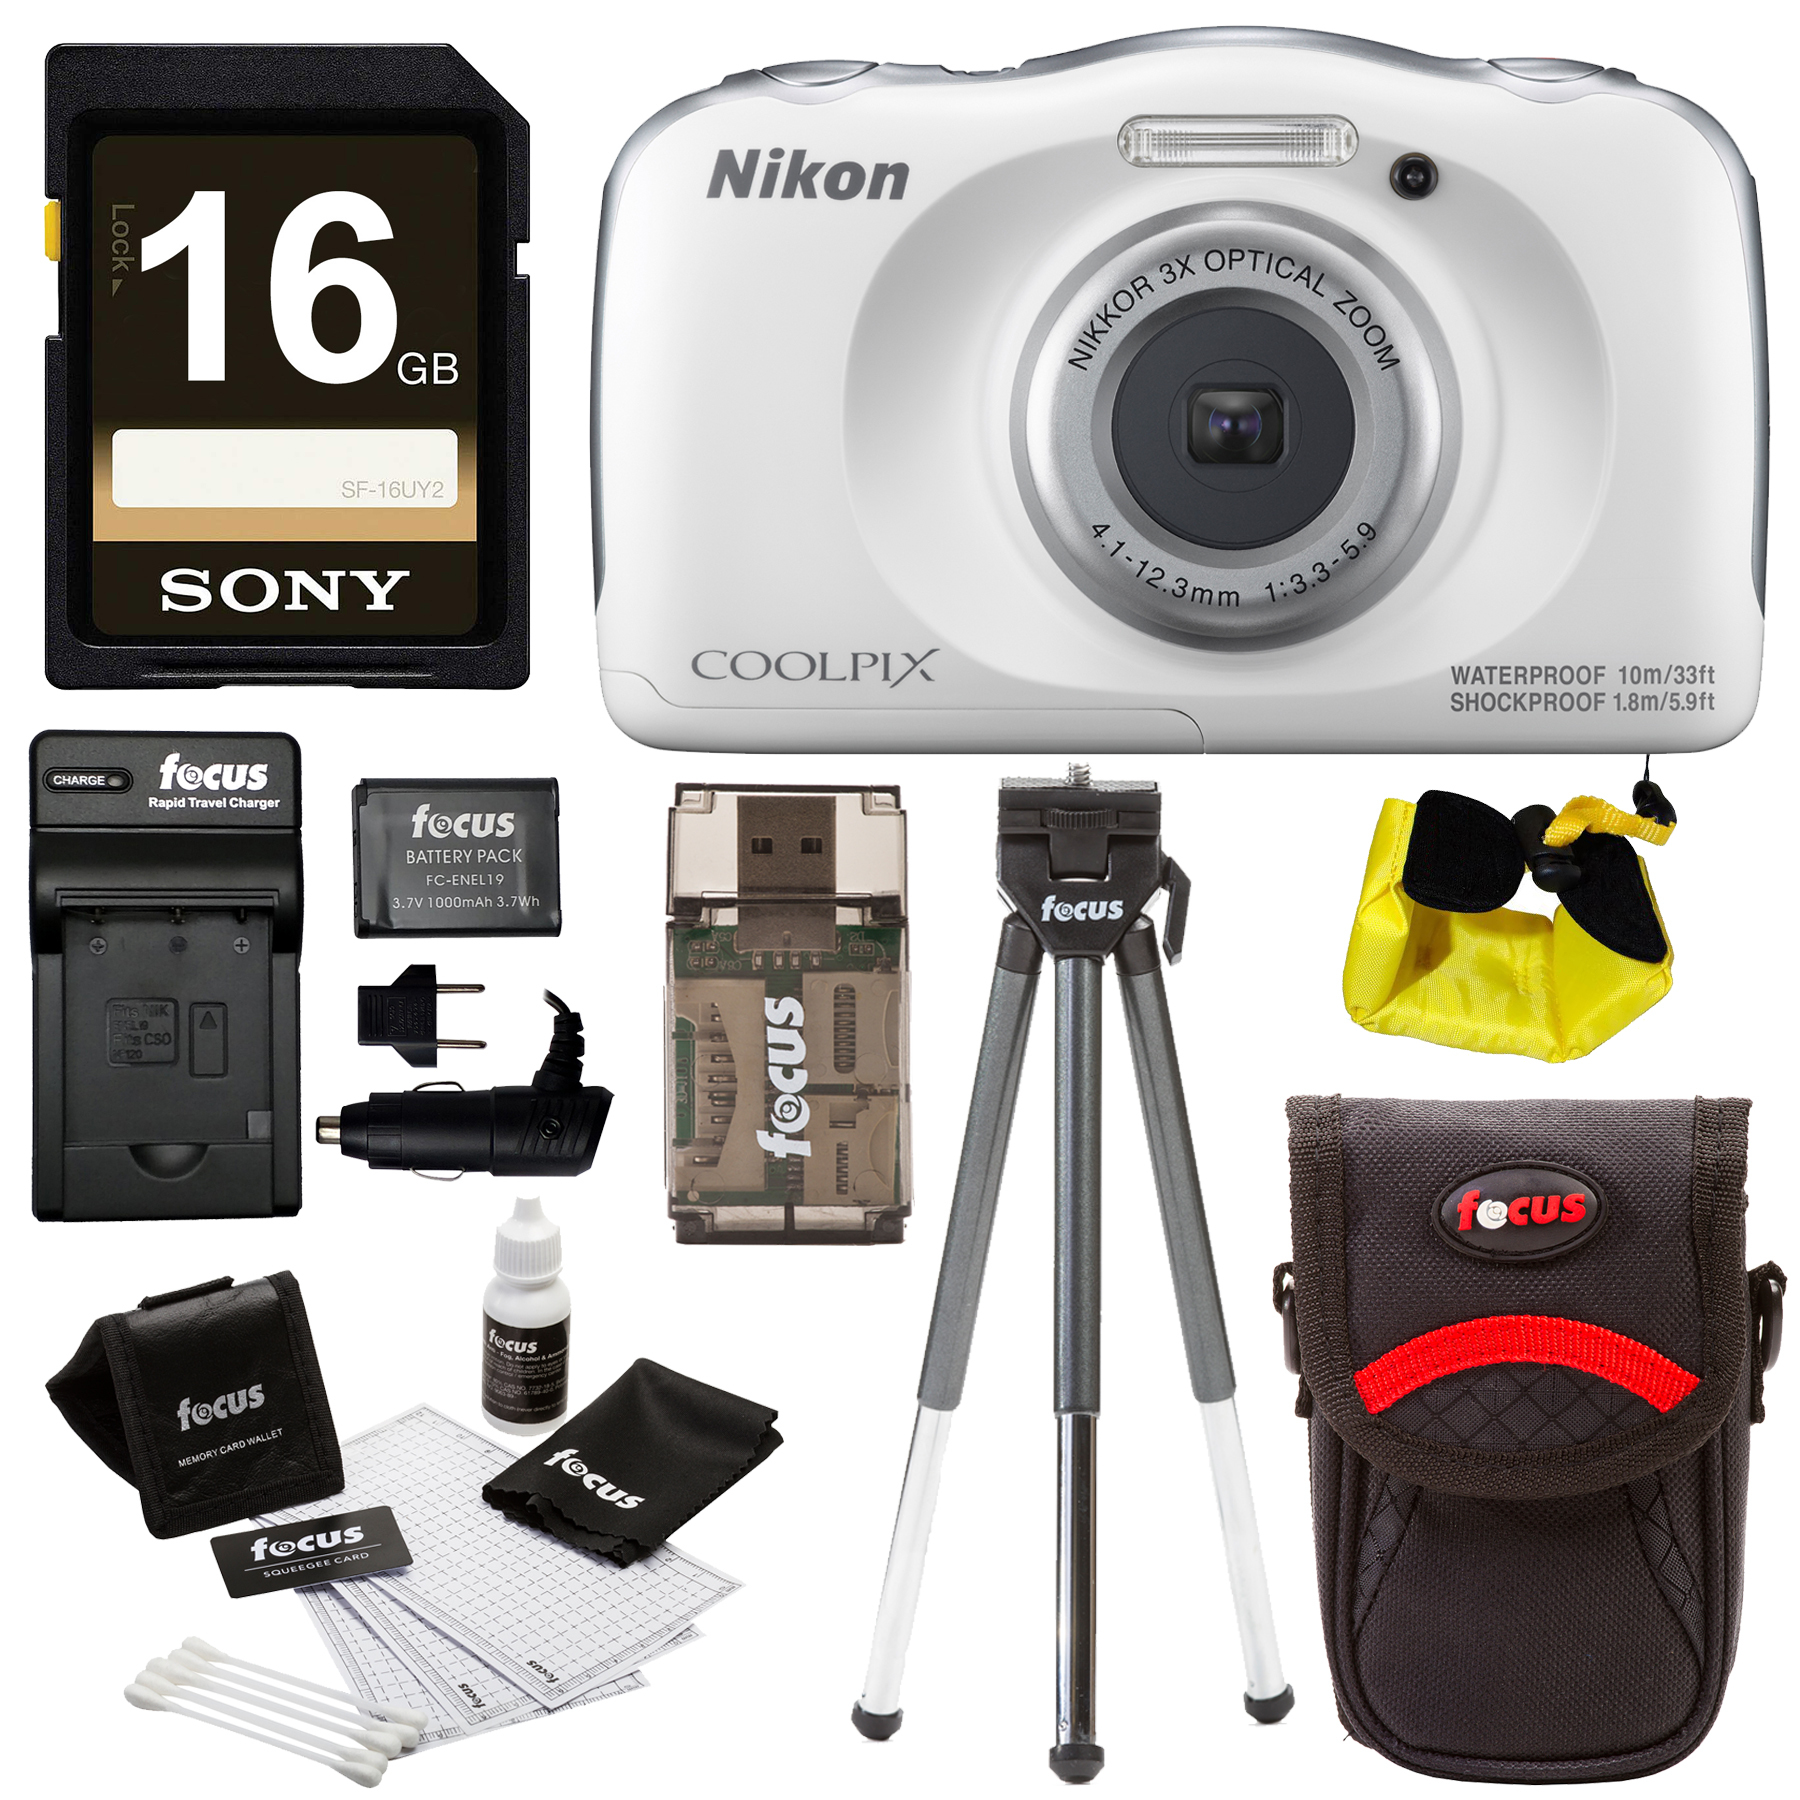 Nikon Coolpix W100 Camera (White), 16GB SD, Battery/Charger, Strap & Accessories